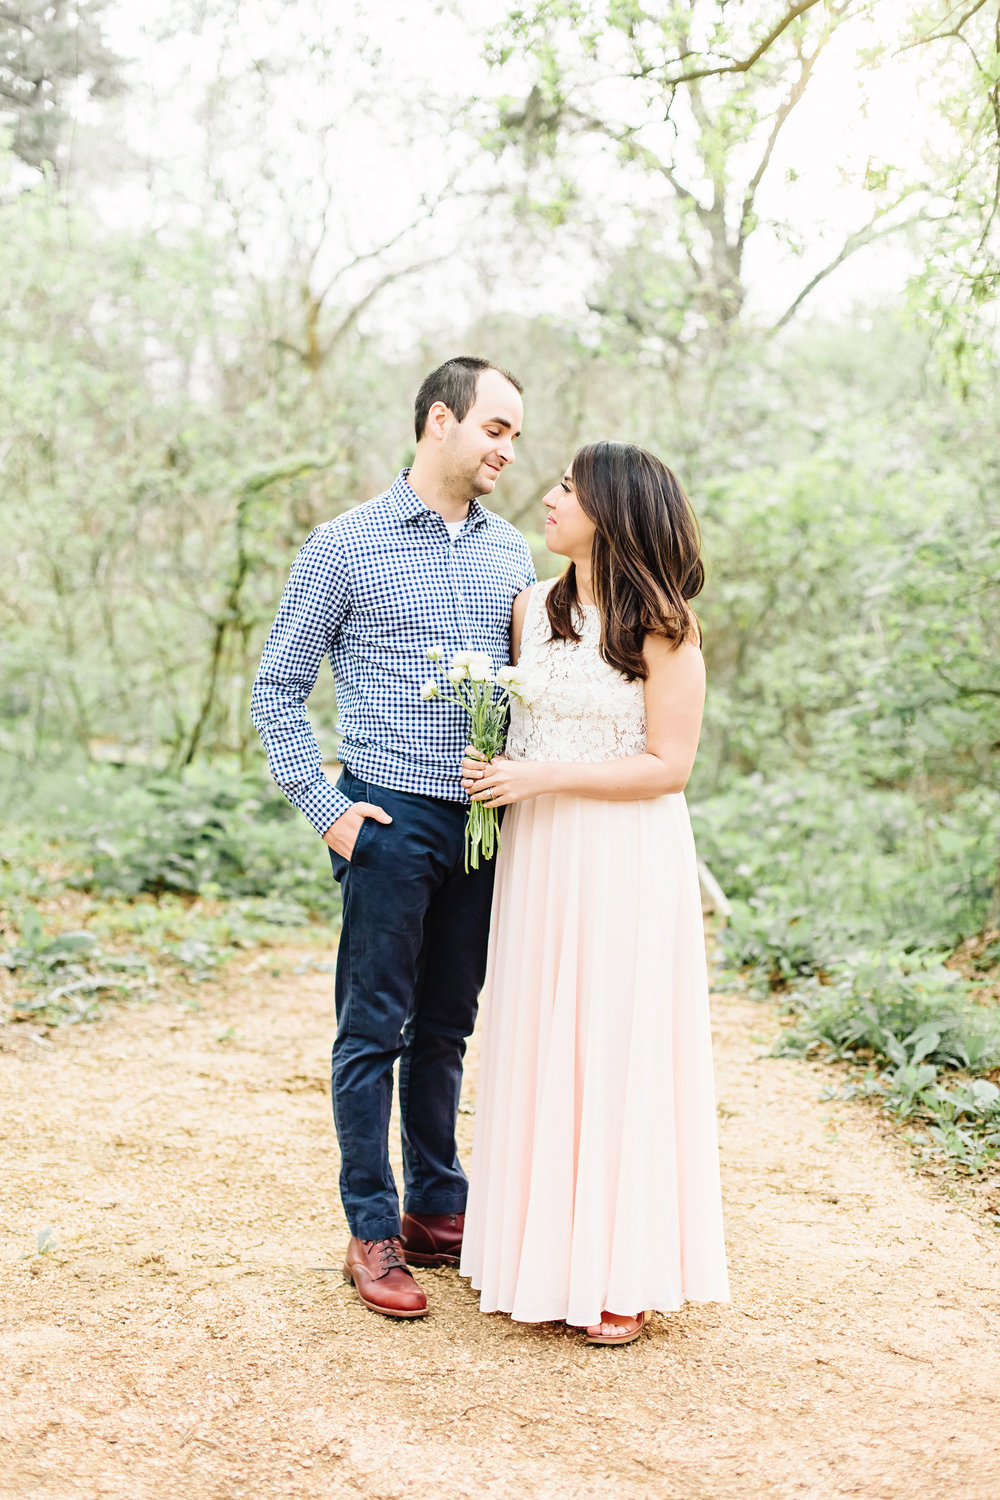 Cassie Schott Photography_Houston Couple Photography_Love Letter Session_10.jpg